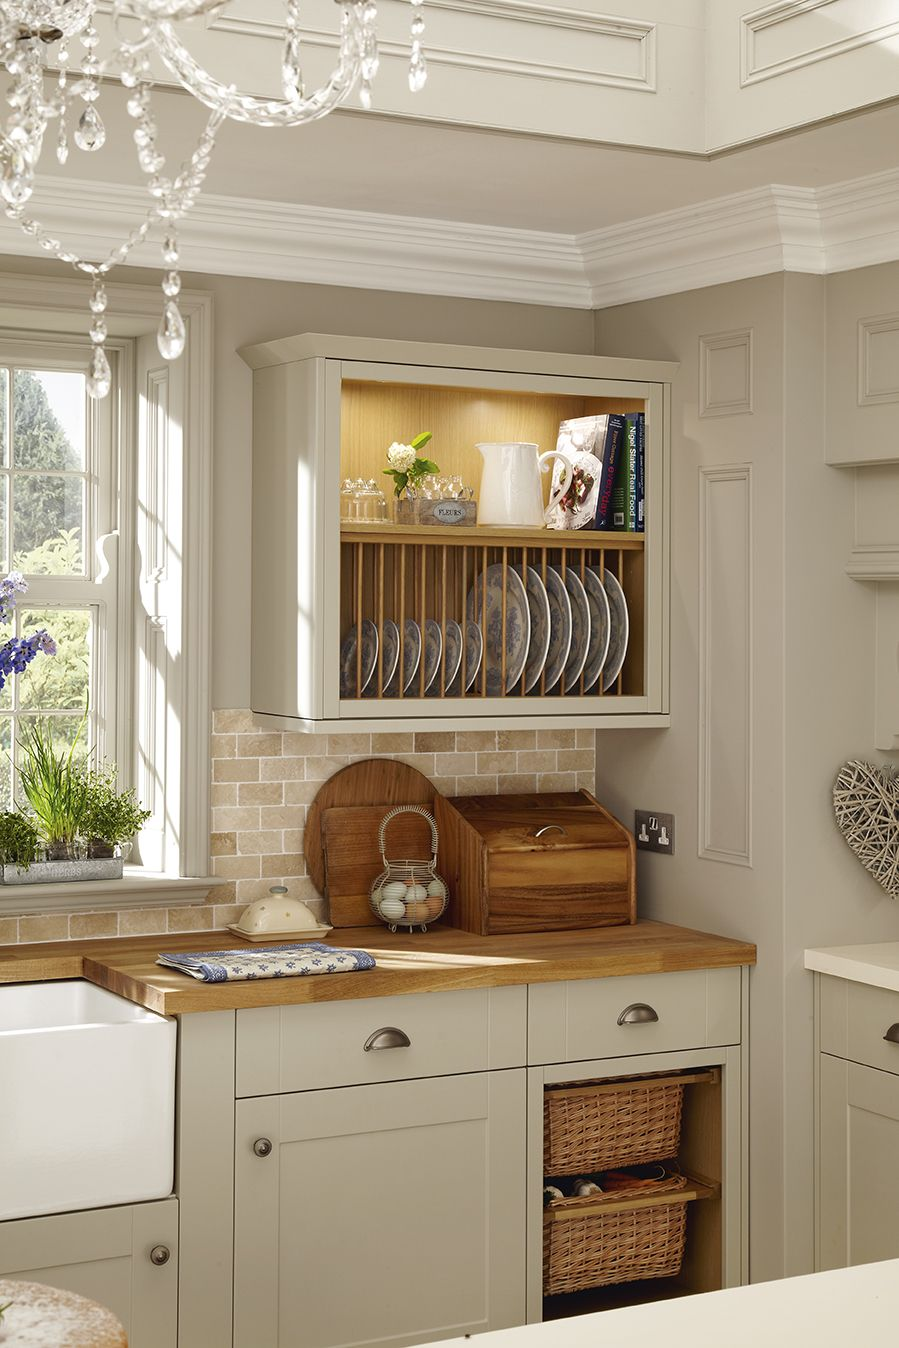 A plate rack and the basket drawers add a traditional feature to this grey shaker style kitchen. This is our Burford Grey kitchen range. & A plate rack and the basket drawers add a traditional feature to ...